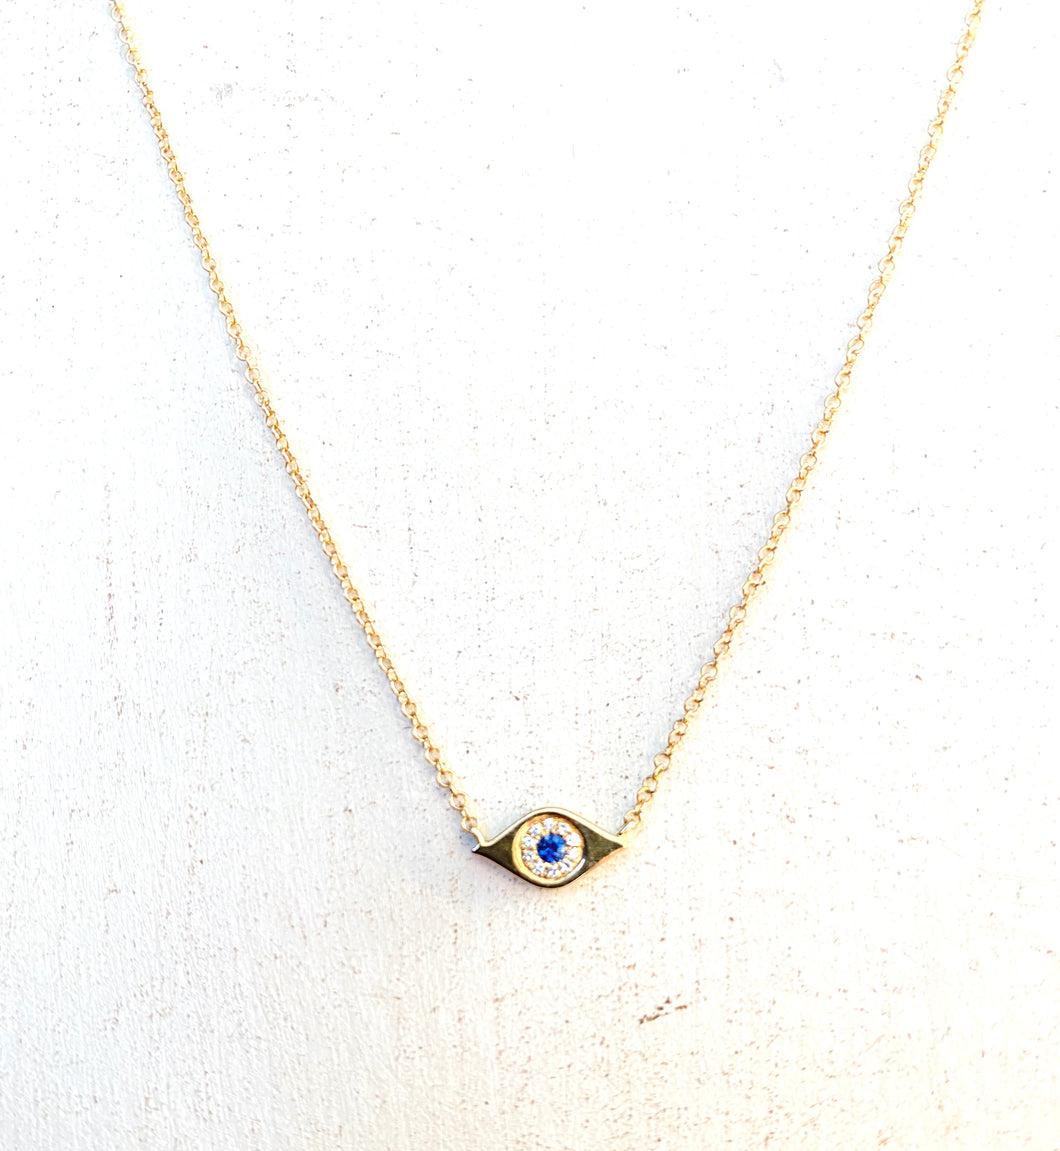 14k Gold/ Diamond/ Sapphire Evil Eye Necklace